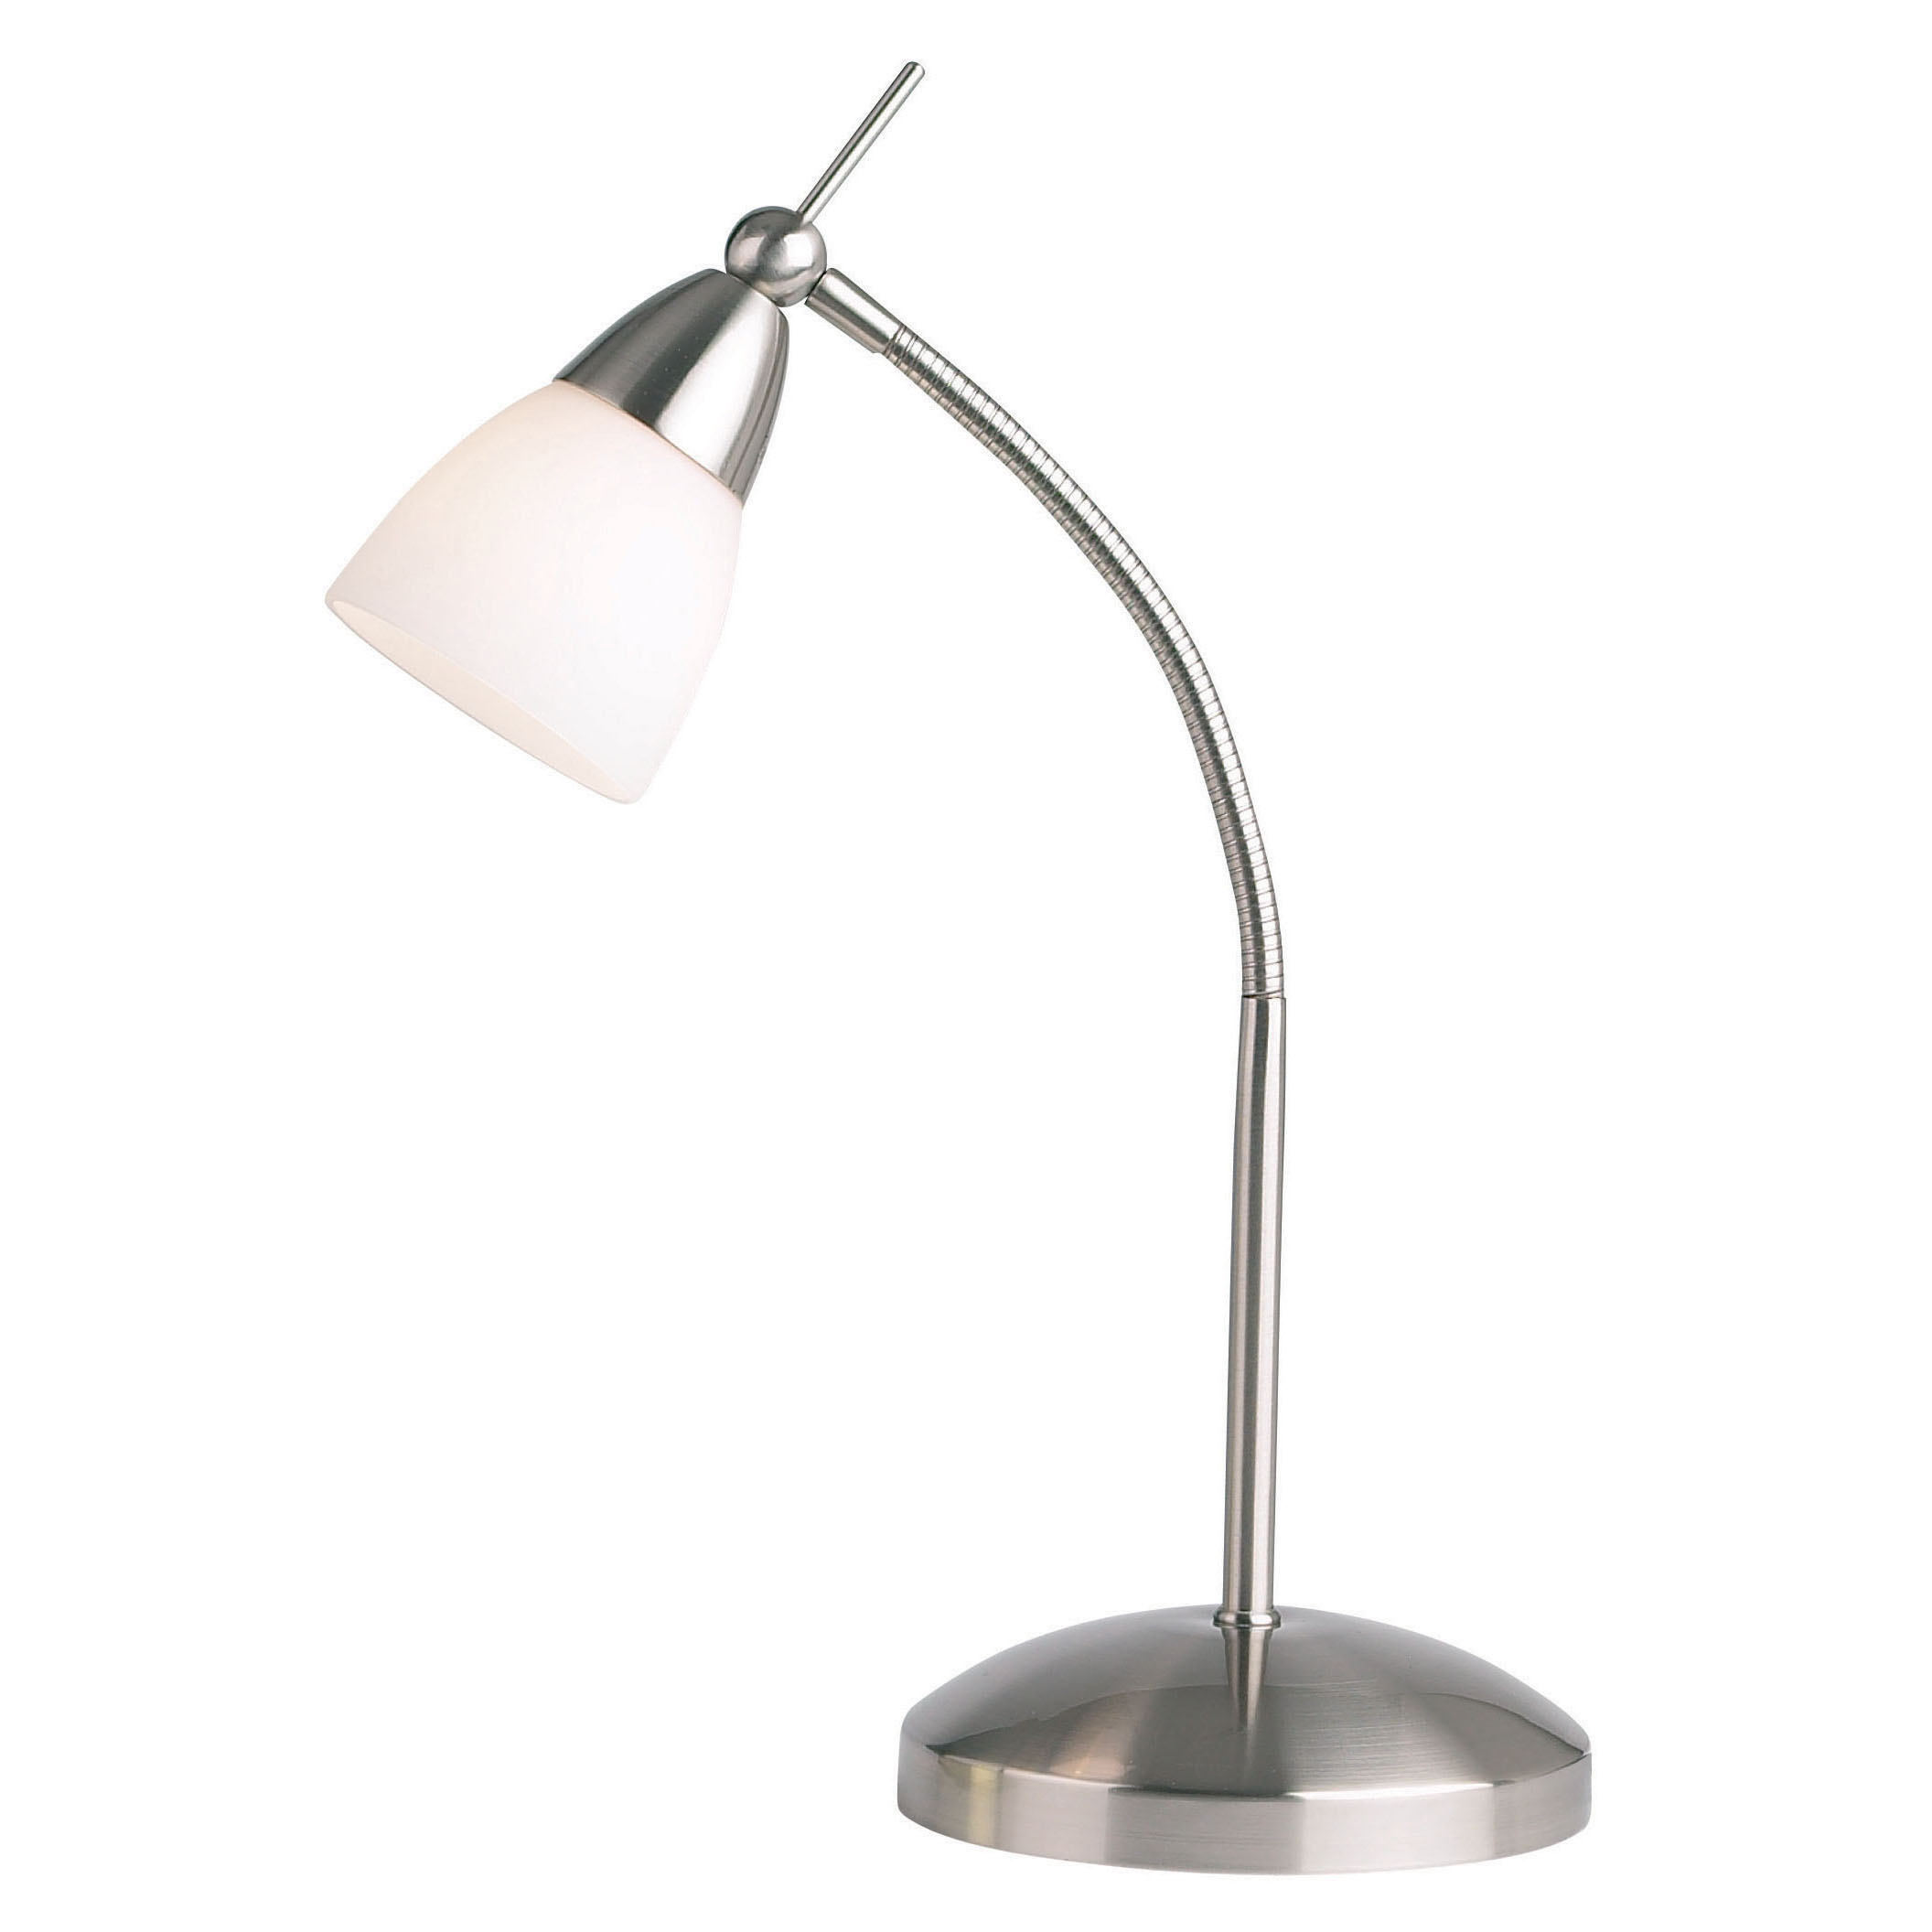 33w g9 touch dimming desk lamp satin chrome complete with opal glass 33w g9 touch dimming desk lamp satin chrome complete with opal glass tx652 tlsc 17 aloadofball Choice Image